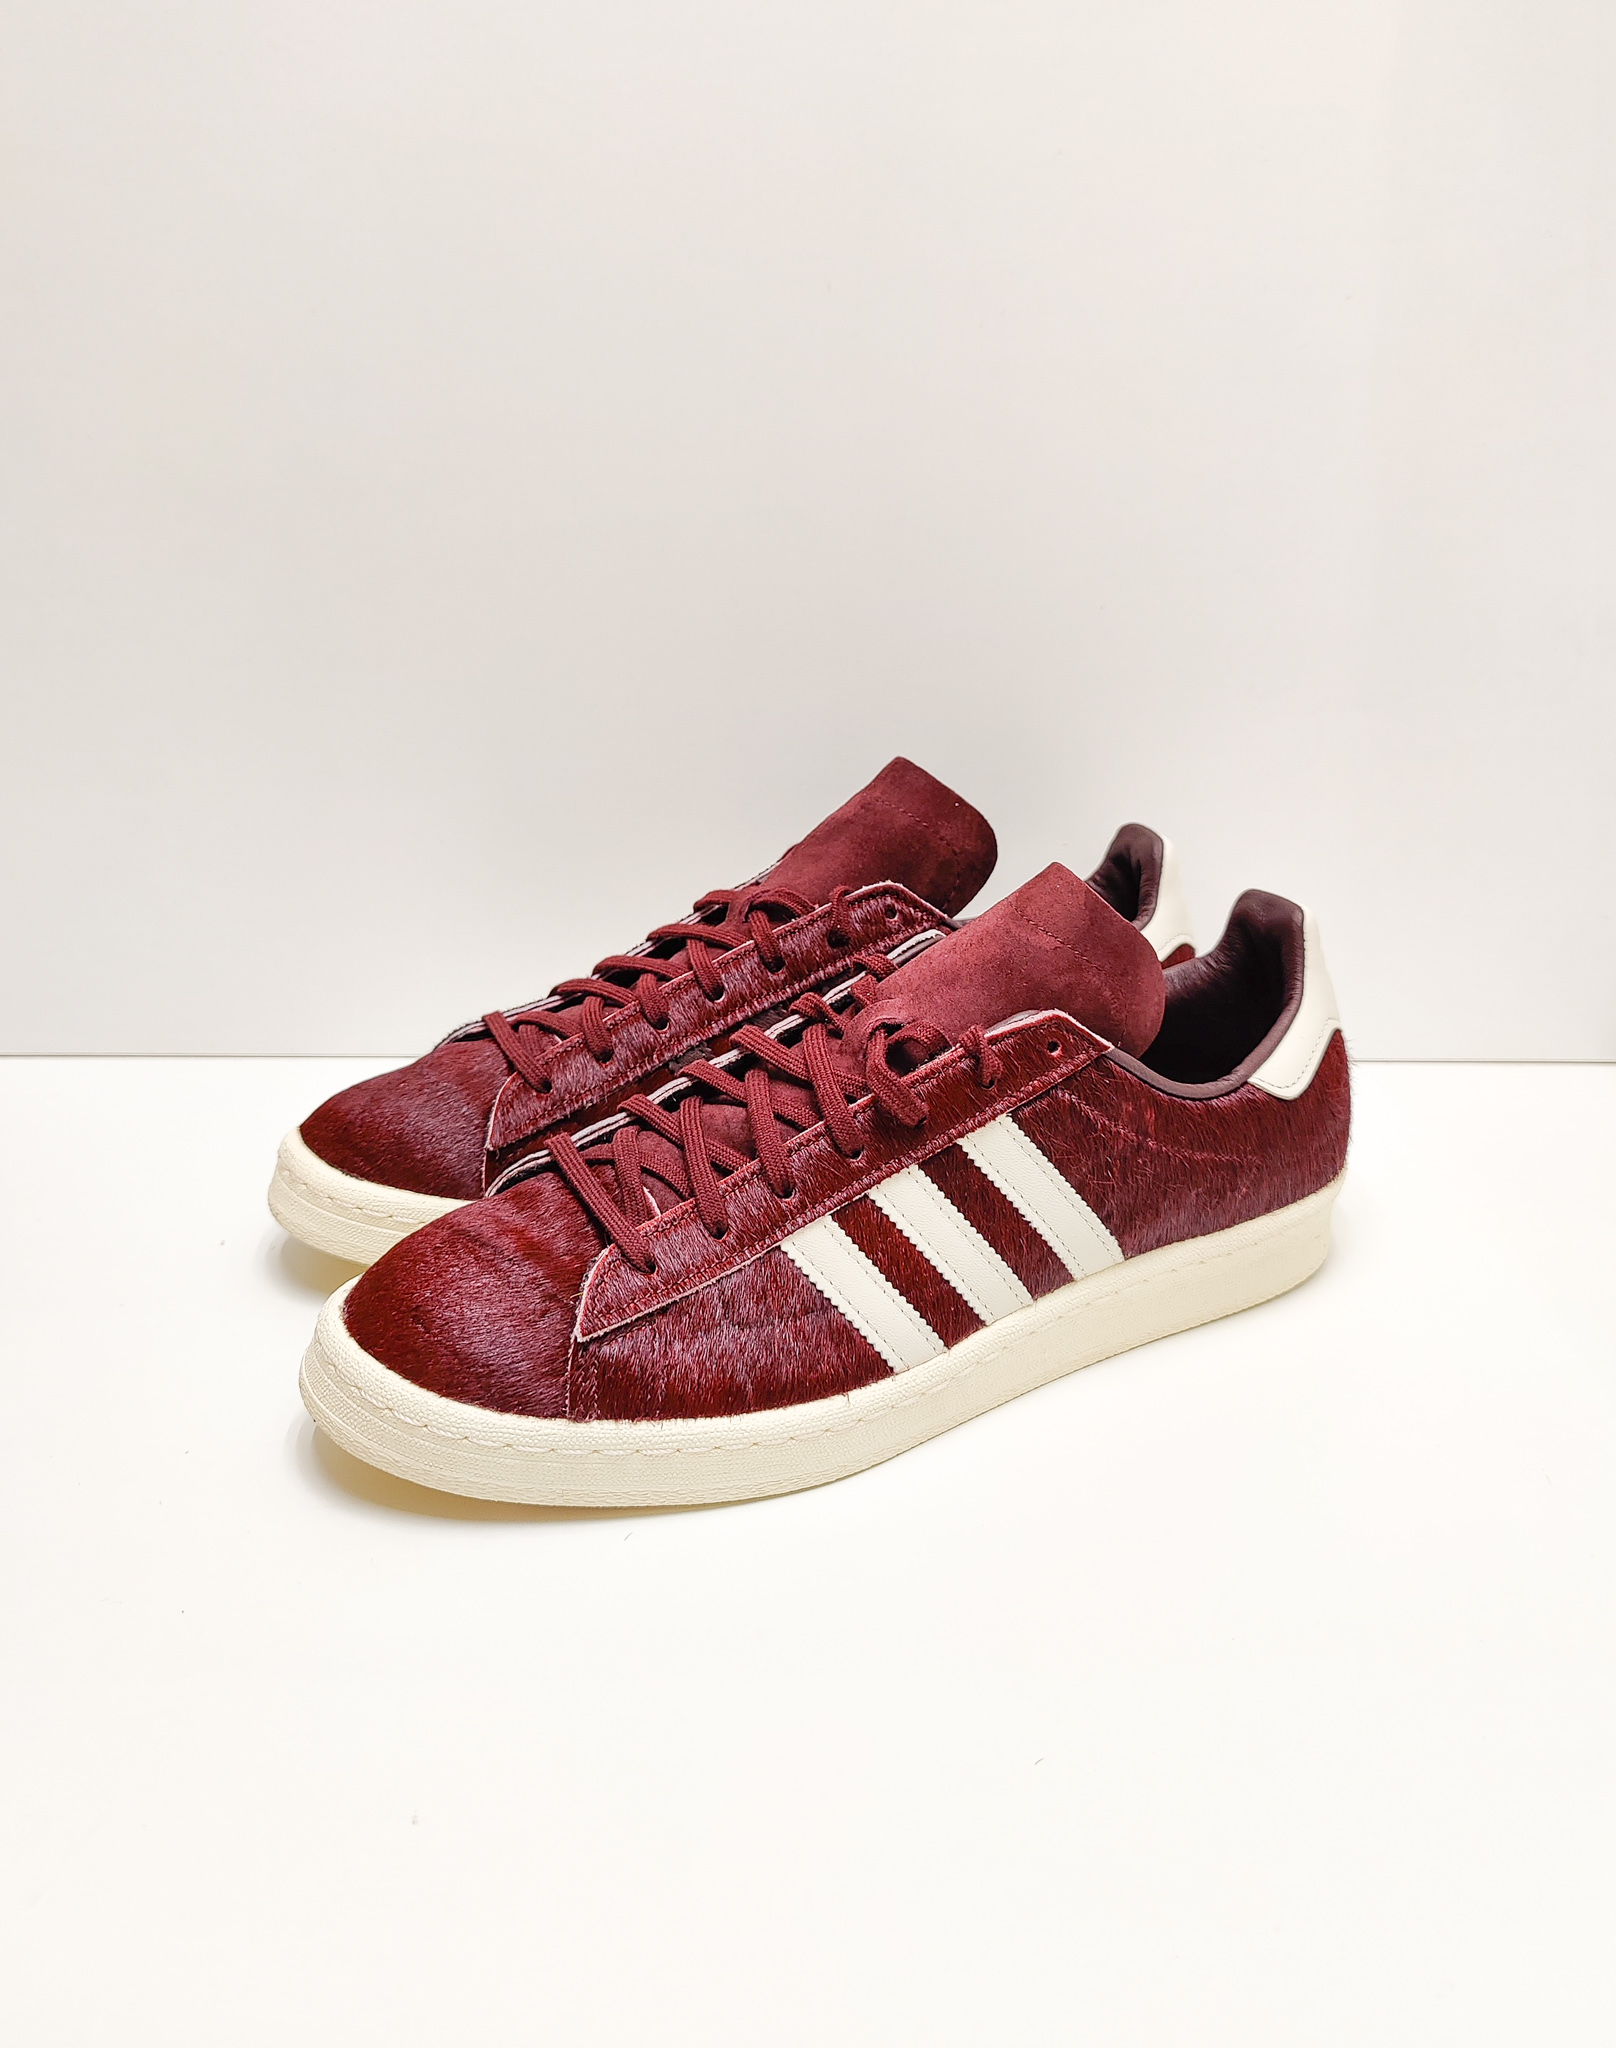 Adidas Campus 80s Pony-Hair Dark Red